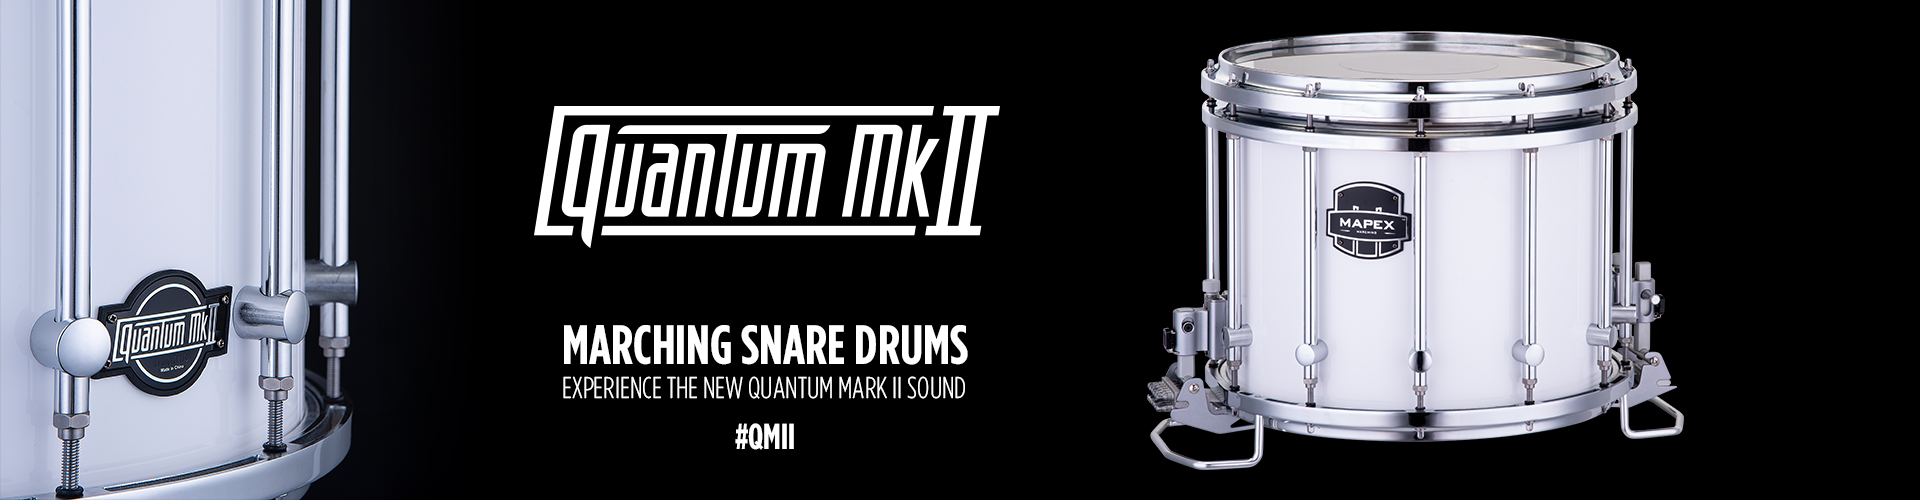 Marching QMII snare drums